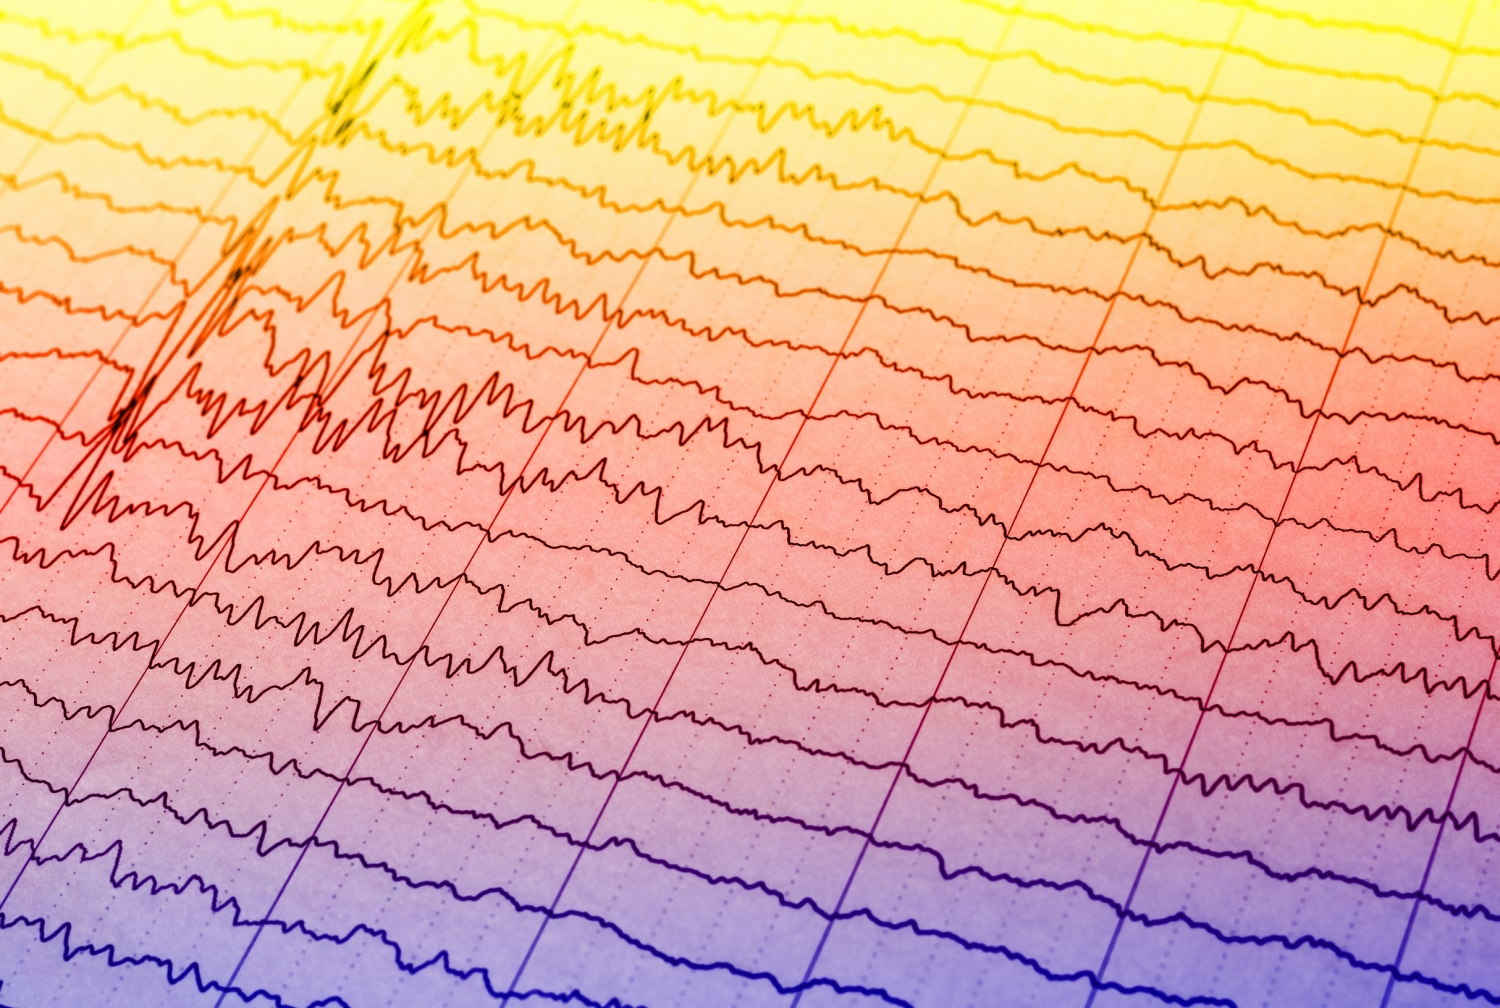 EEG wave in human brain.